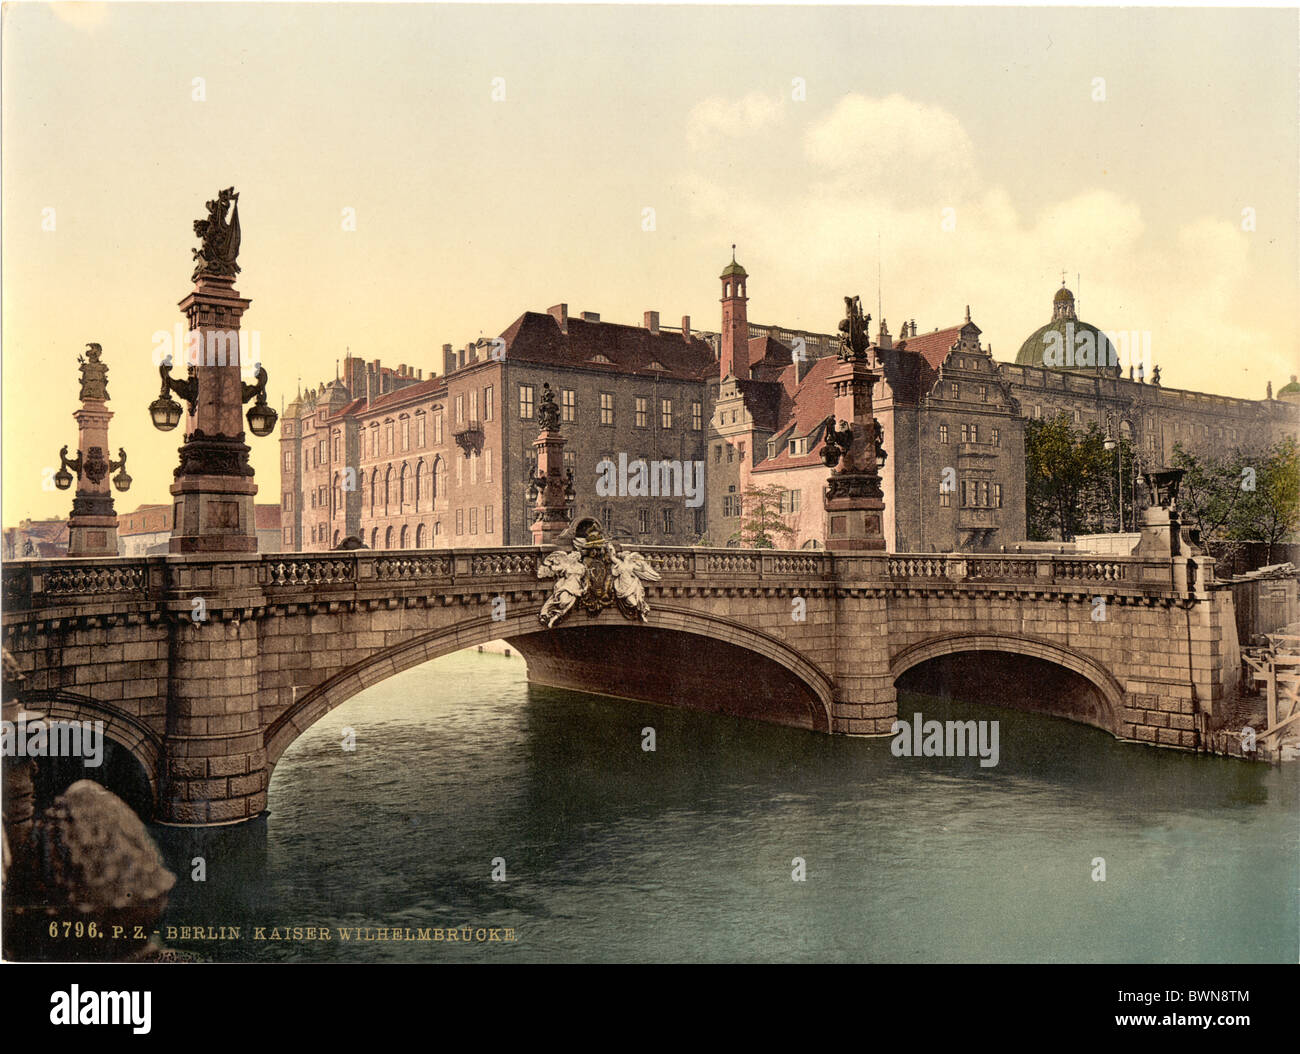 Berlin Emperor William Bridge Germany Europe Photochrom about 1900 German Empire history historical historic - Stock Image